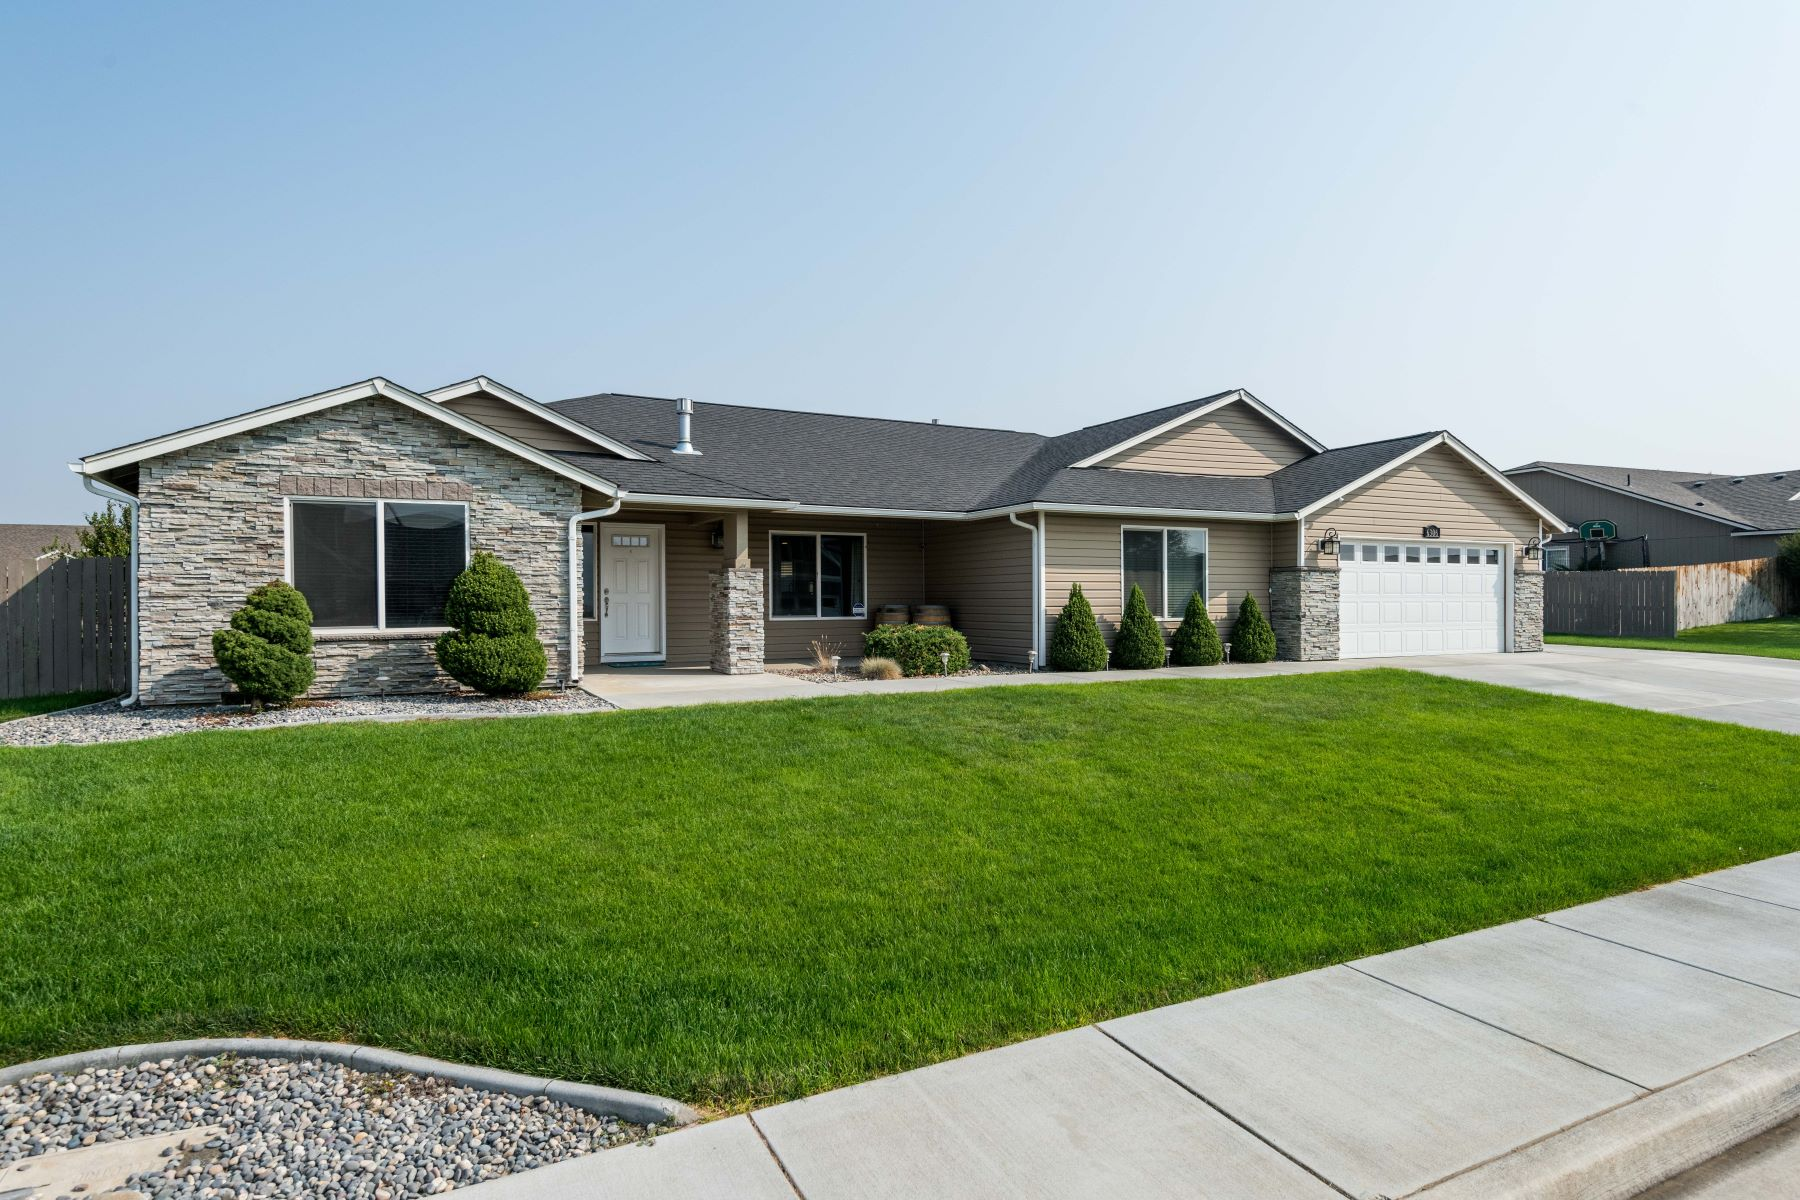 Single Family Homes for Sale at Custom Built Rambler in West Richland! 6306 Galena Street, West Richland, Washington 99353 United States